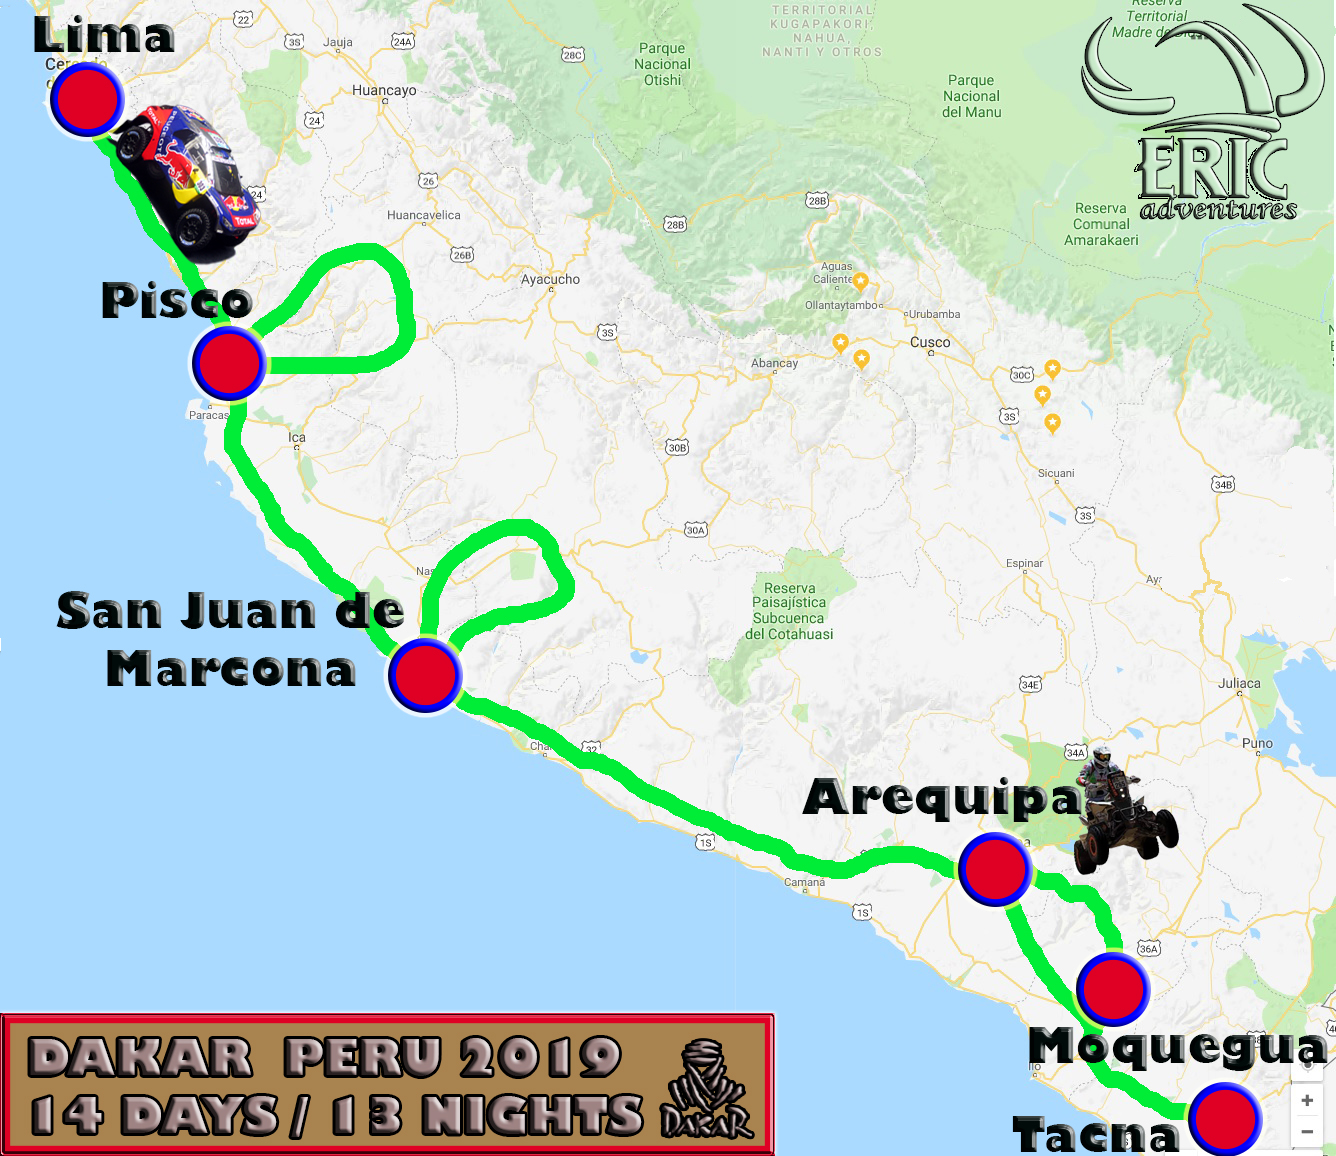 Dakar 2019 14 Days Motorbike Packages Peru